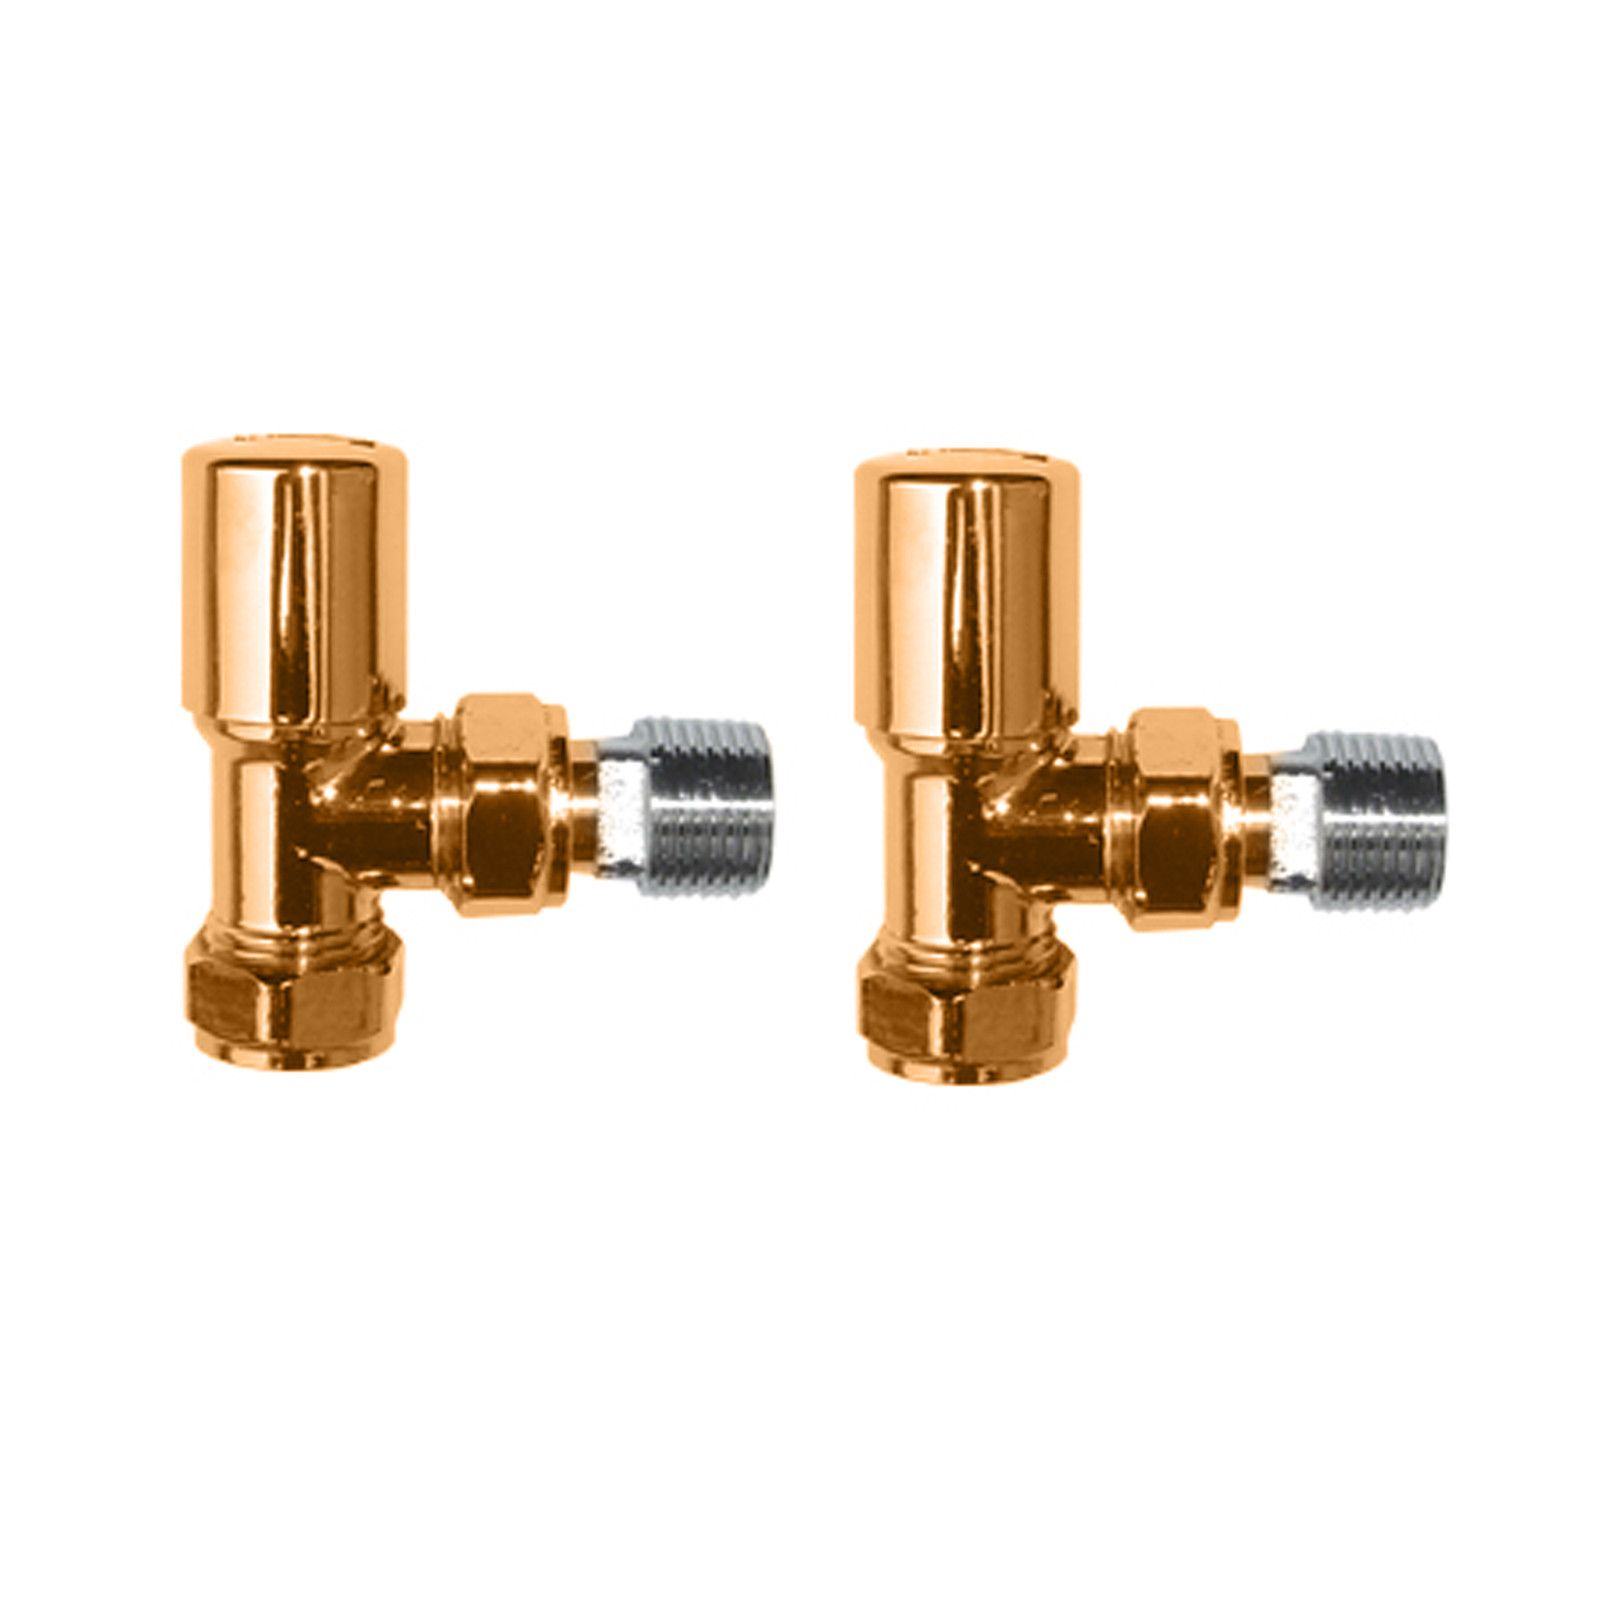 Modern Round Angles Towel Radiator Valves In Dorato 24ct Gold